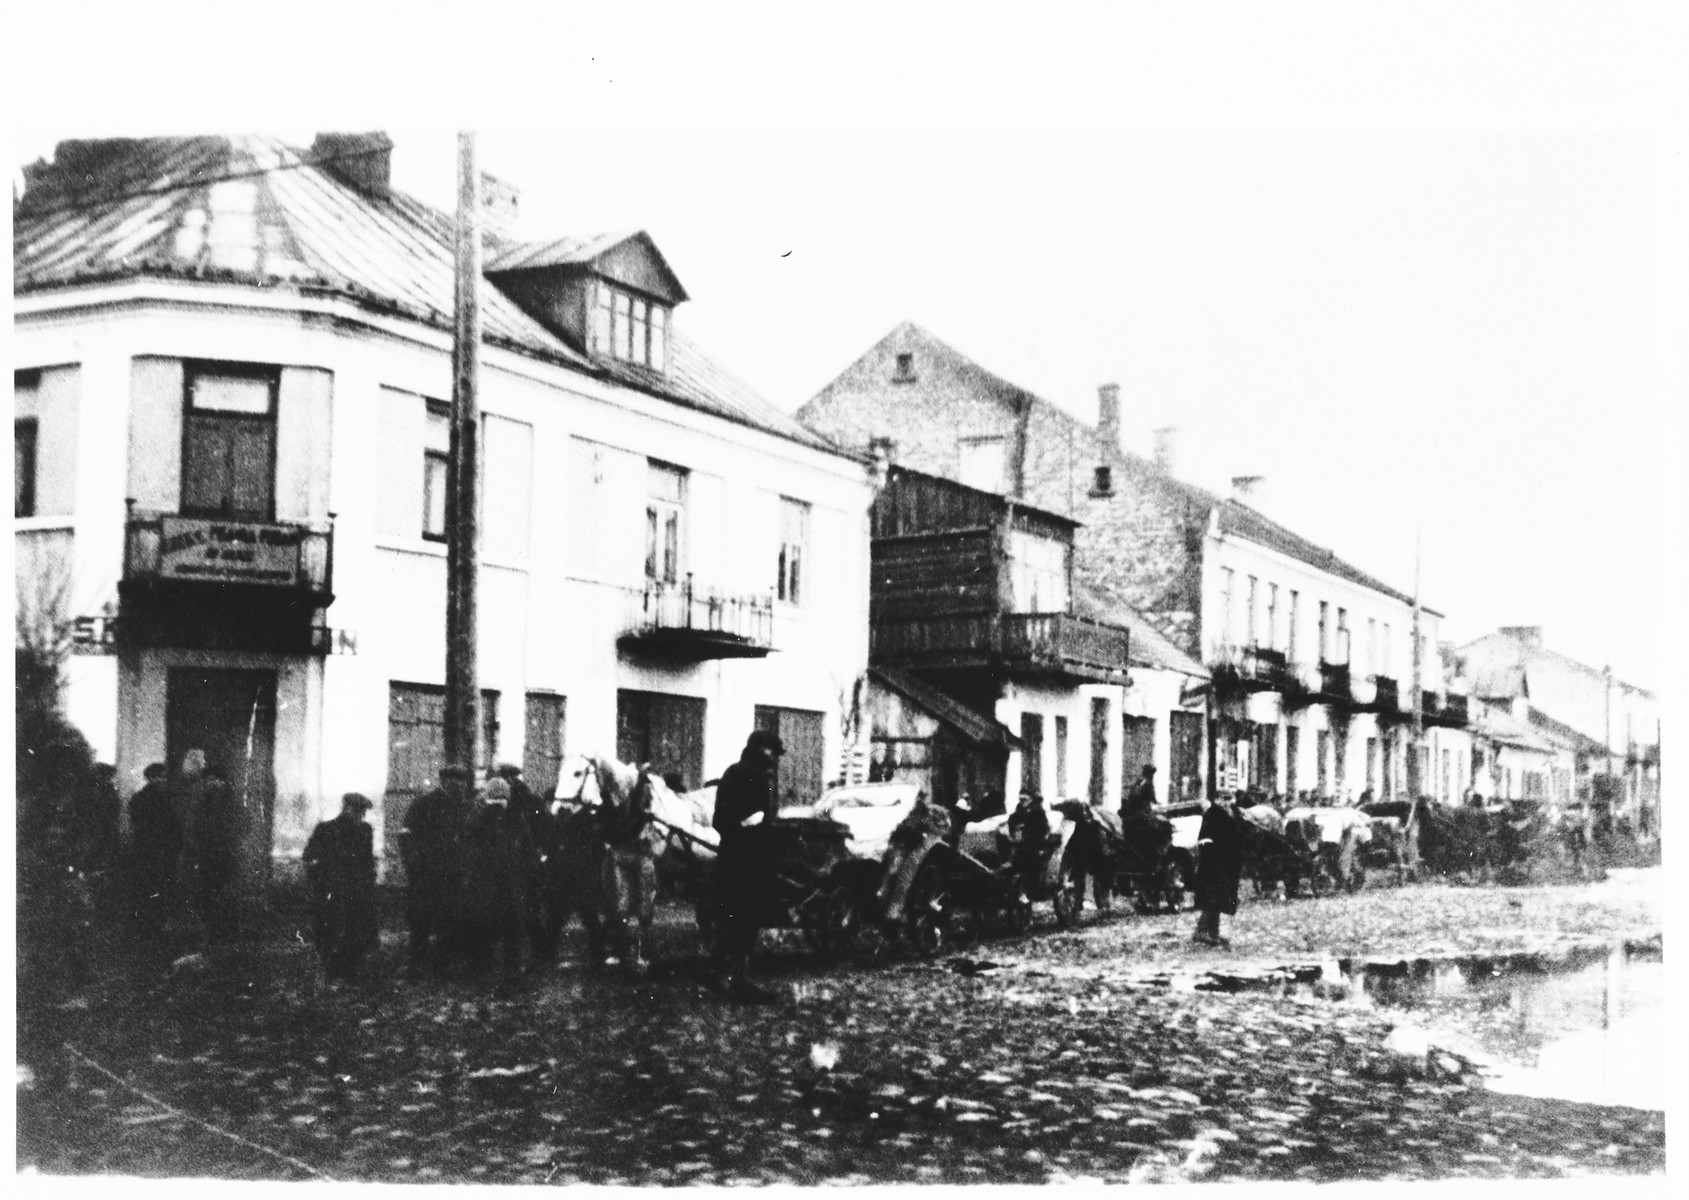 Horse and wagons line the street of an unidentified ghetto.